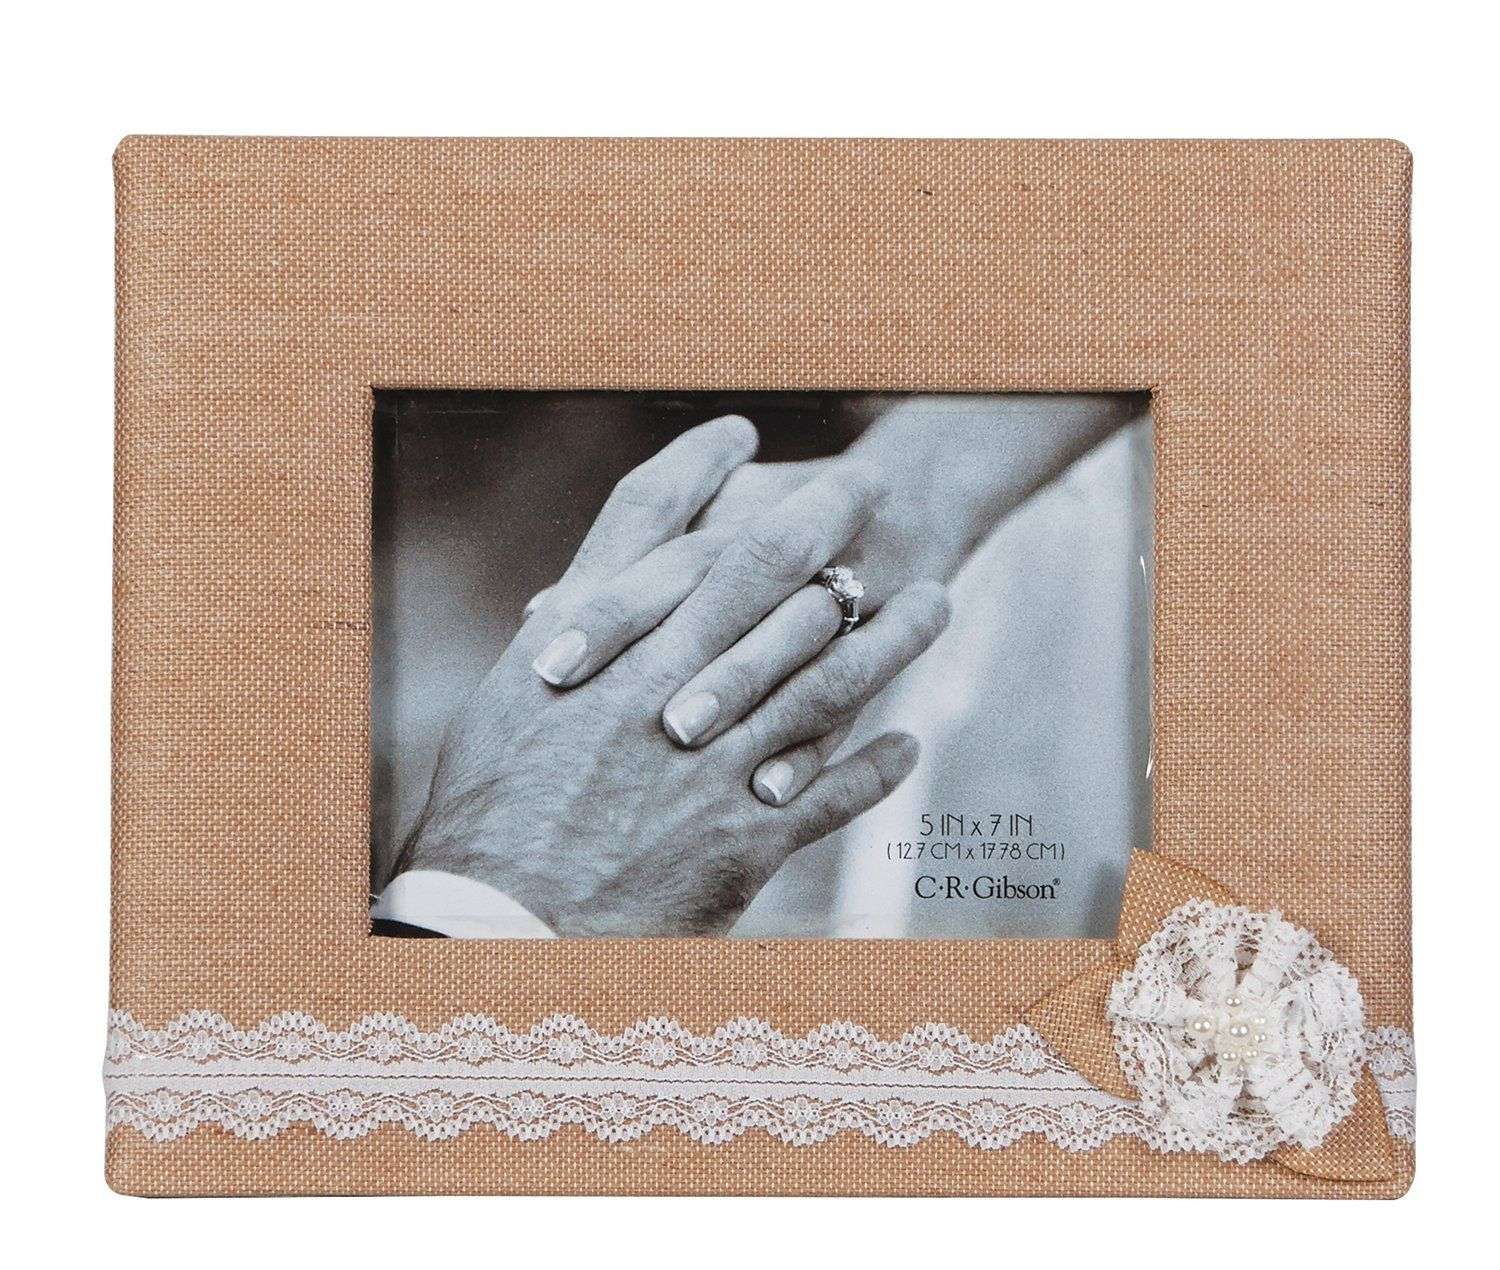 C R Gibson Tabletop Photo Frame 5 By 7 Inch Moments Fabric Covered Photo Frame Holds 5 X 7 Inch Photo 9 X 11 Inch Frame Frame Baby Picture Frames Burlap Fabric